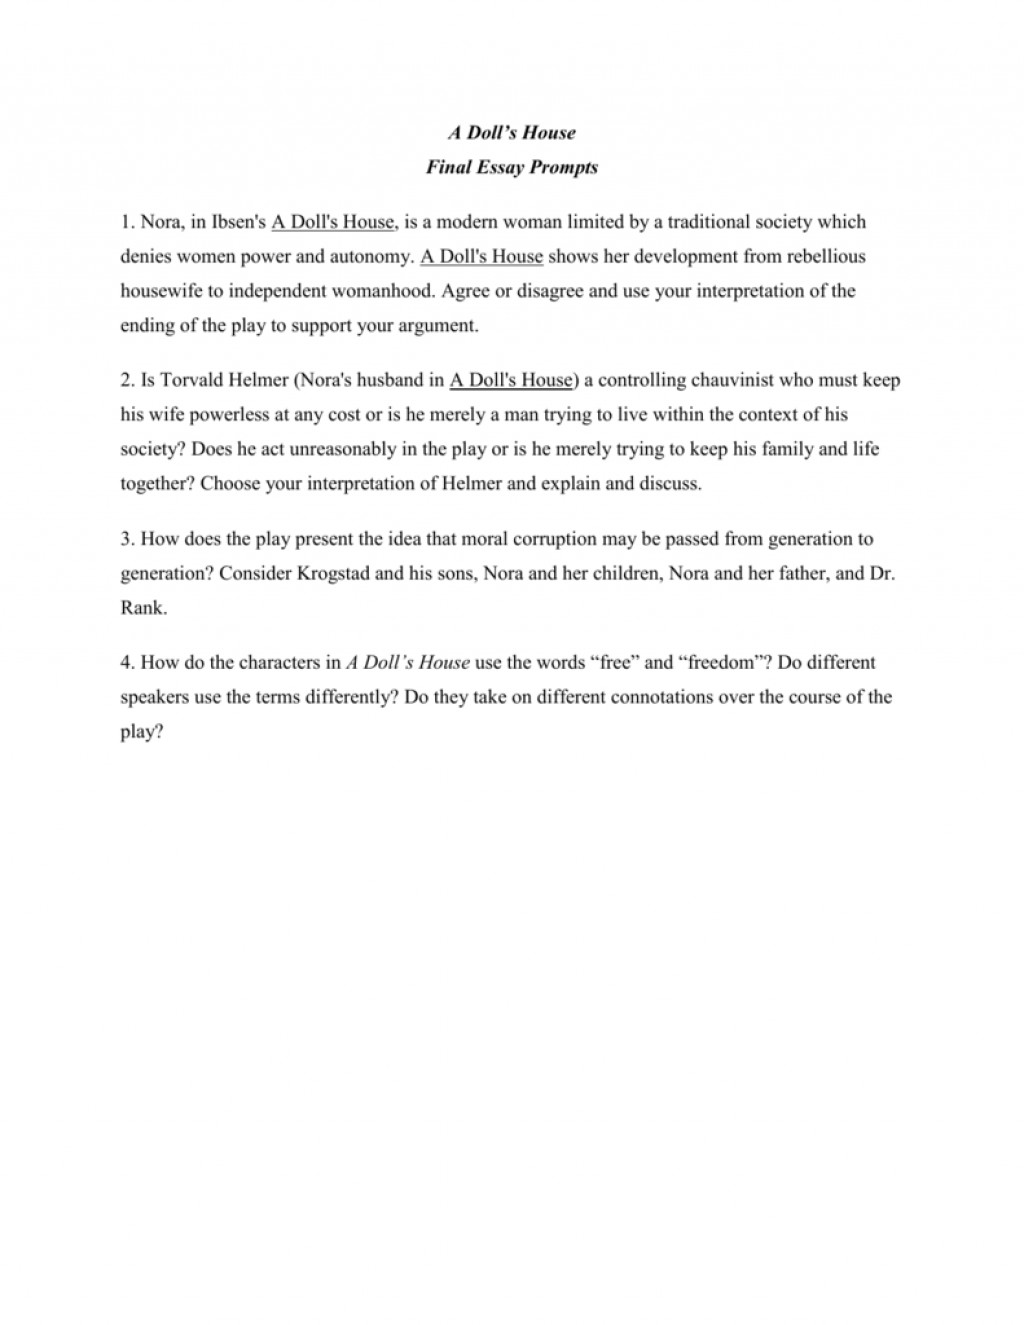 002 Essay Example 008012039 1 Dolls Breathtaking A House Doll's Titles Act 2 Discussion Questions Topics Large